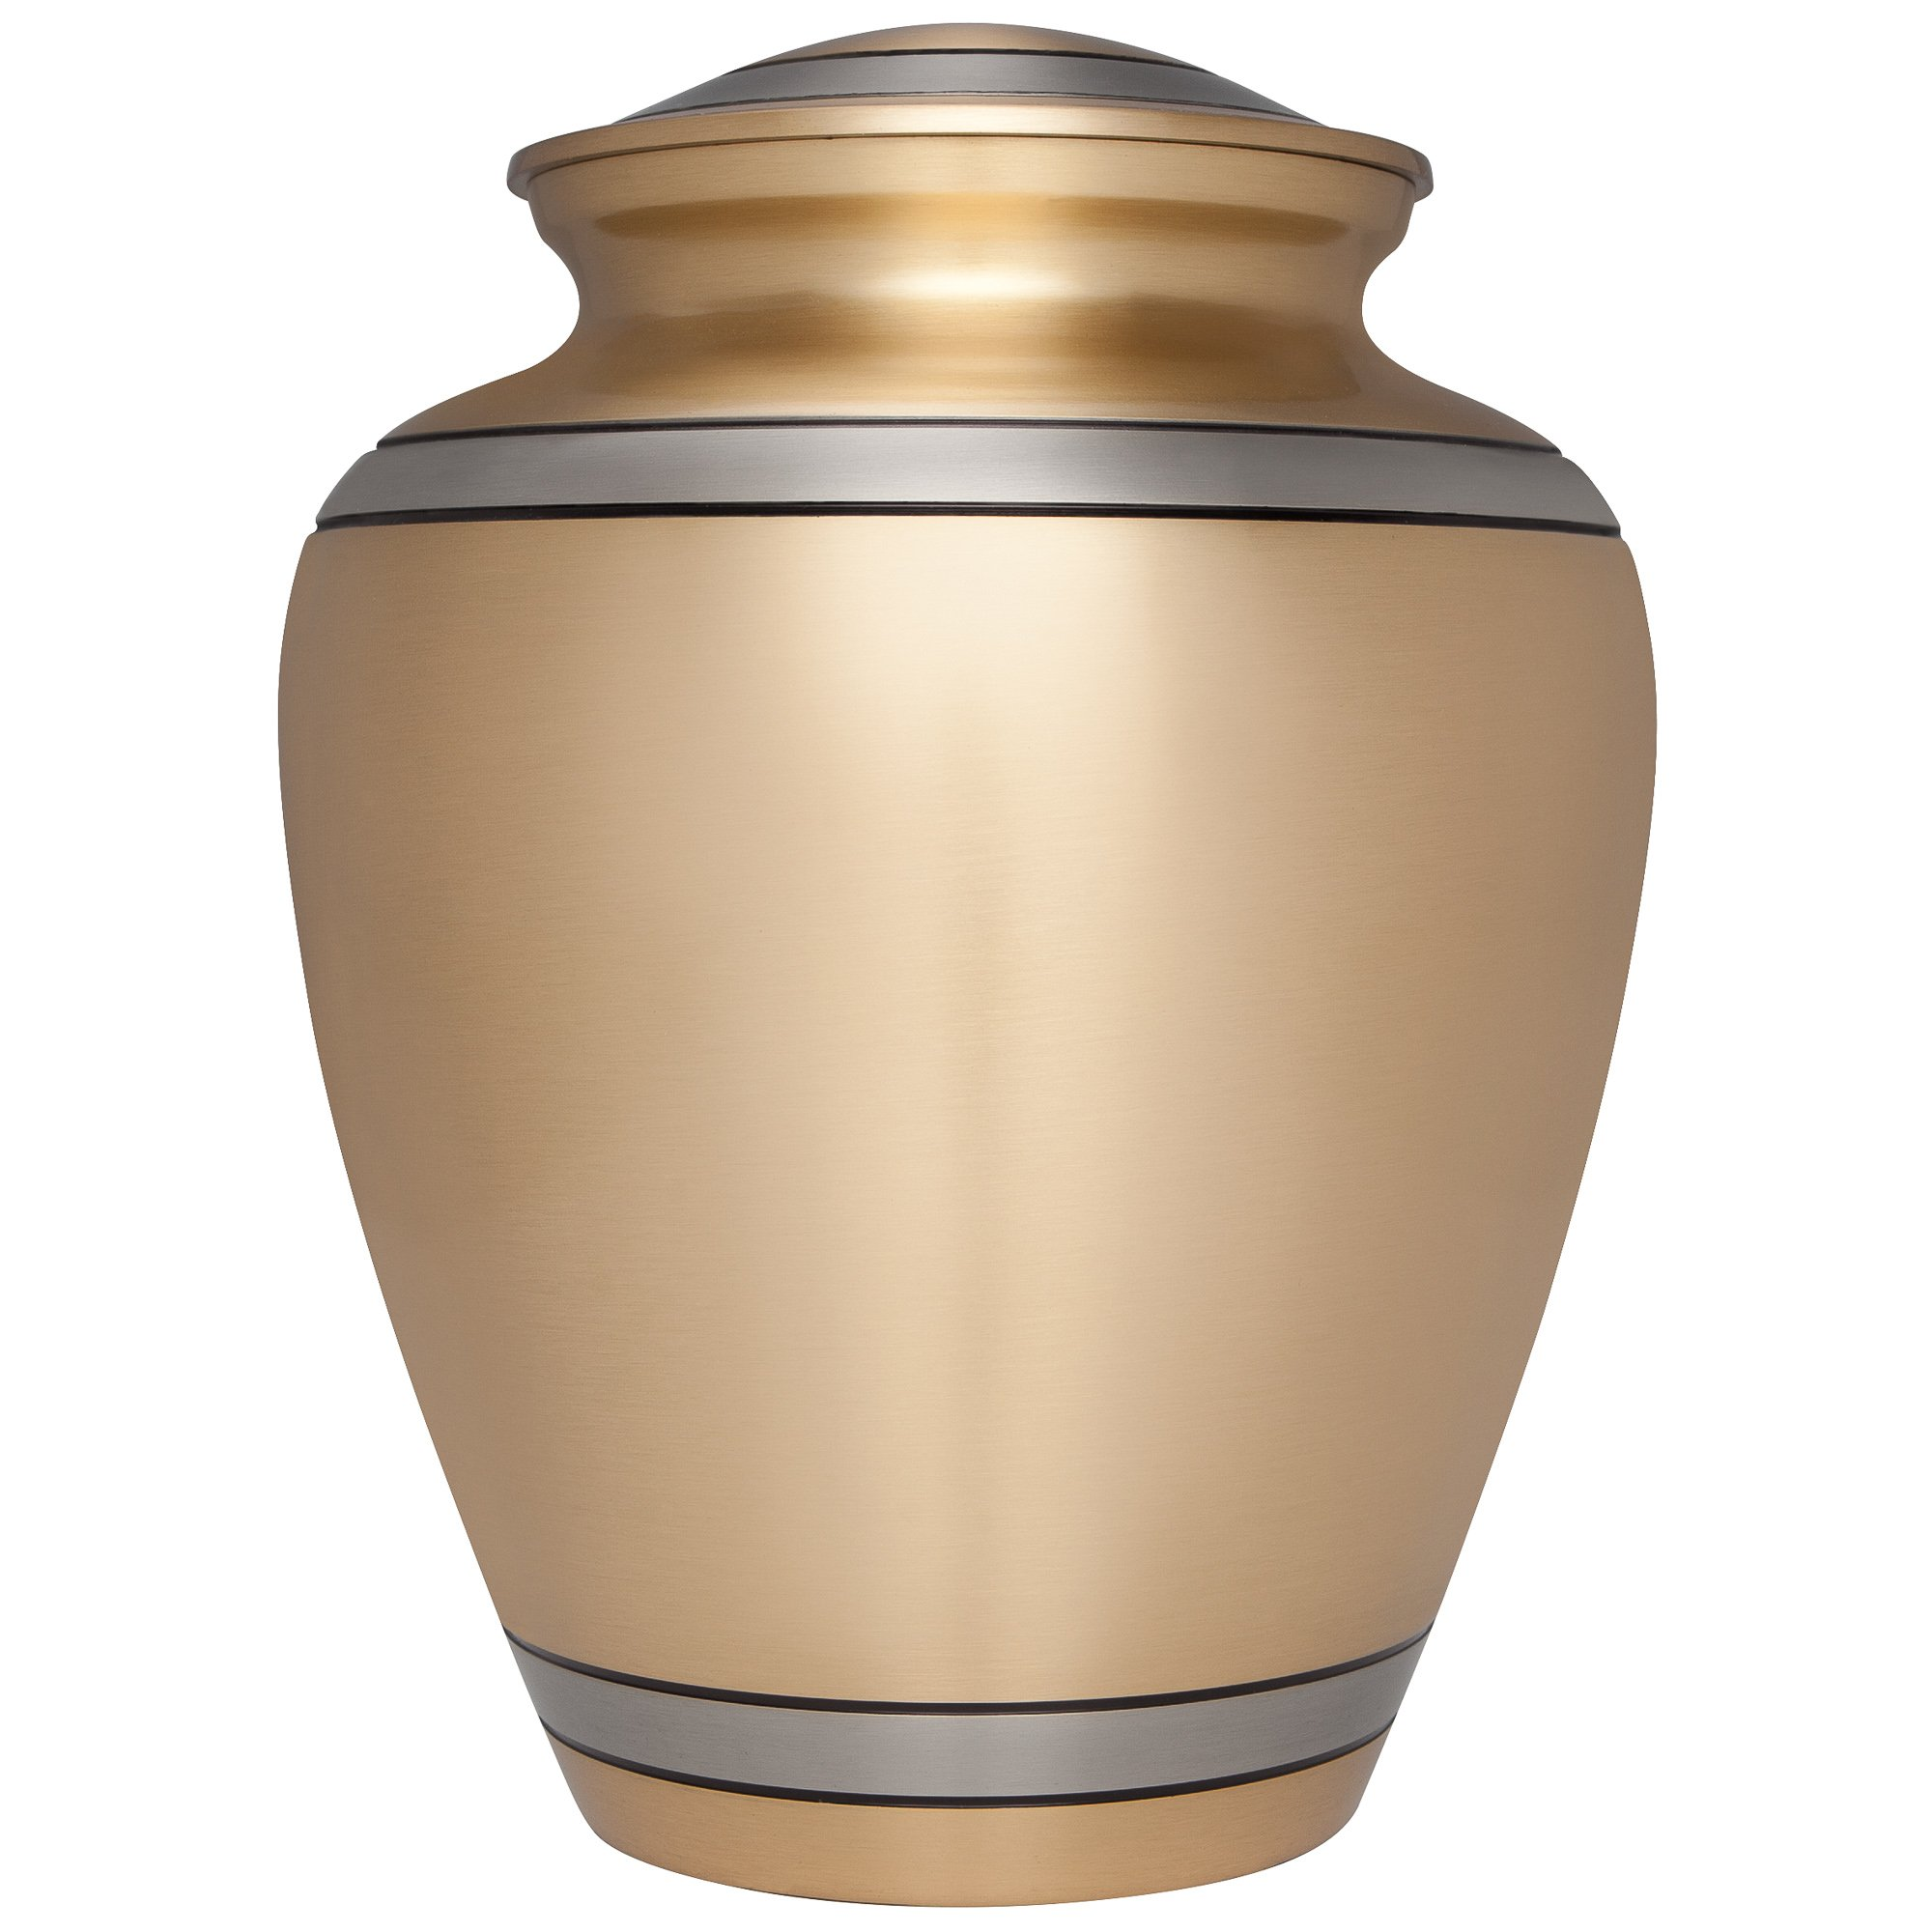 Golden Funeral Cremation Urn for Human Ashes by Liliane Memorials - Hand Made in Brass - Suitable for Cemetery Burial or Niche - Large Size fits remains of Adults up to 200 lbs- Peaceful Embrace Model